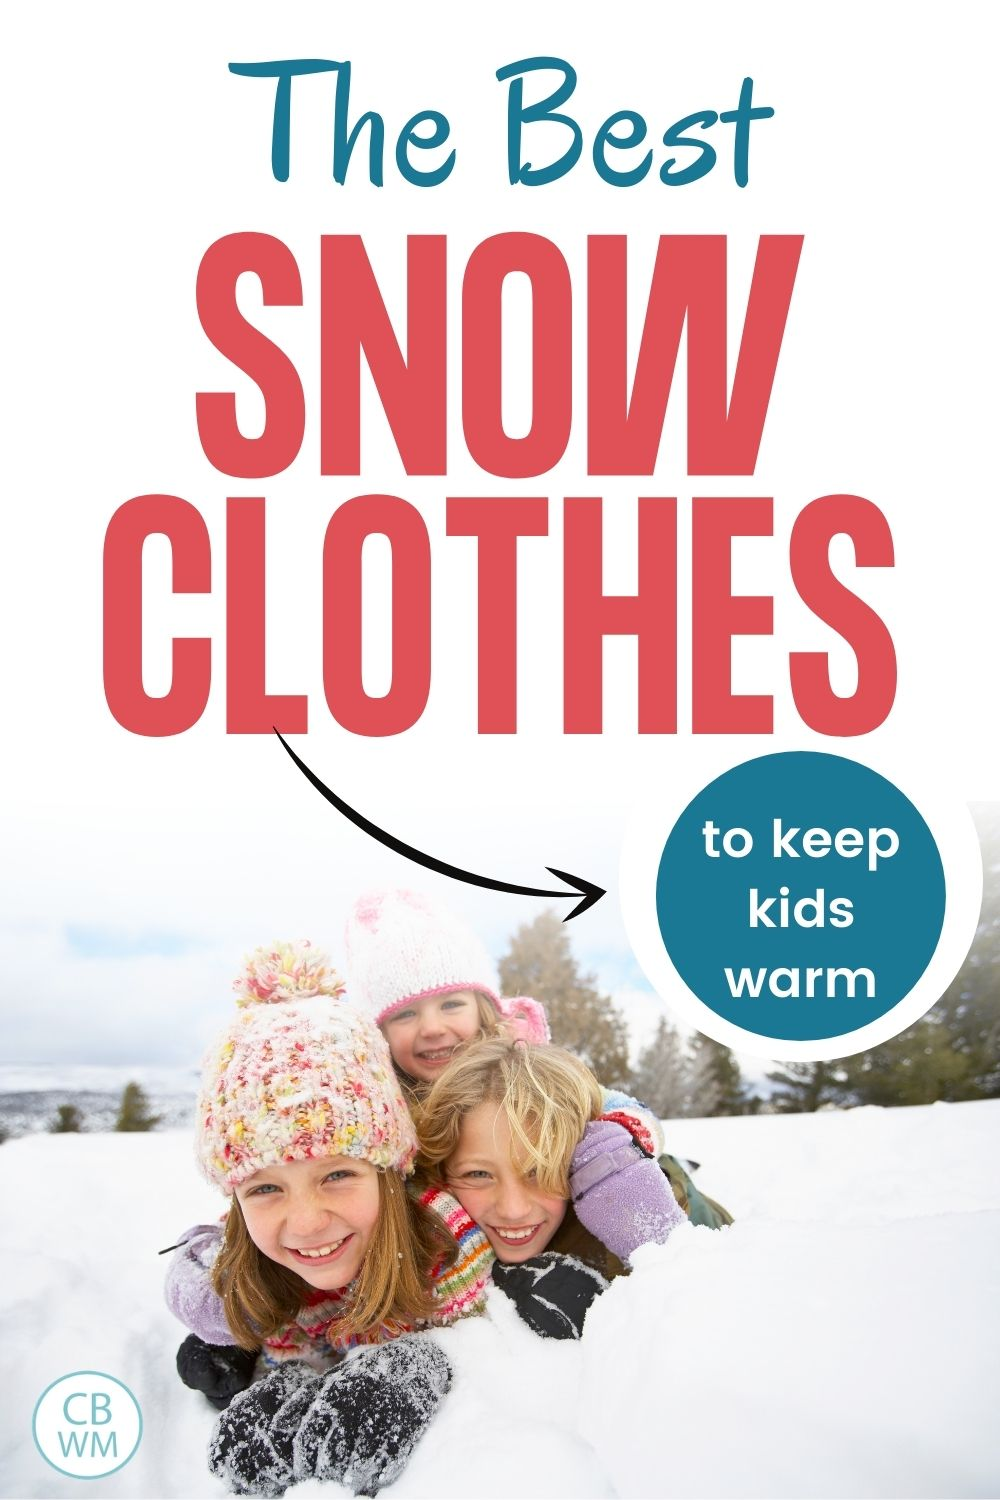 The best snow clothes for kids